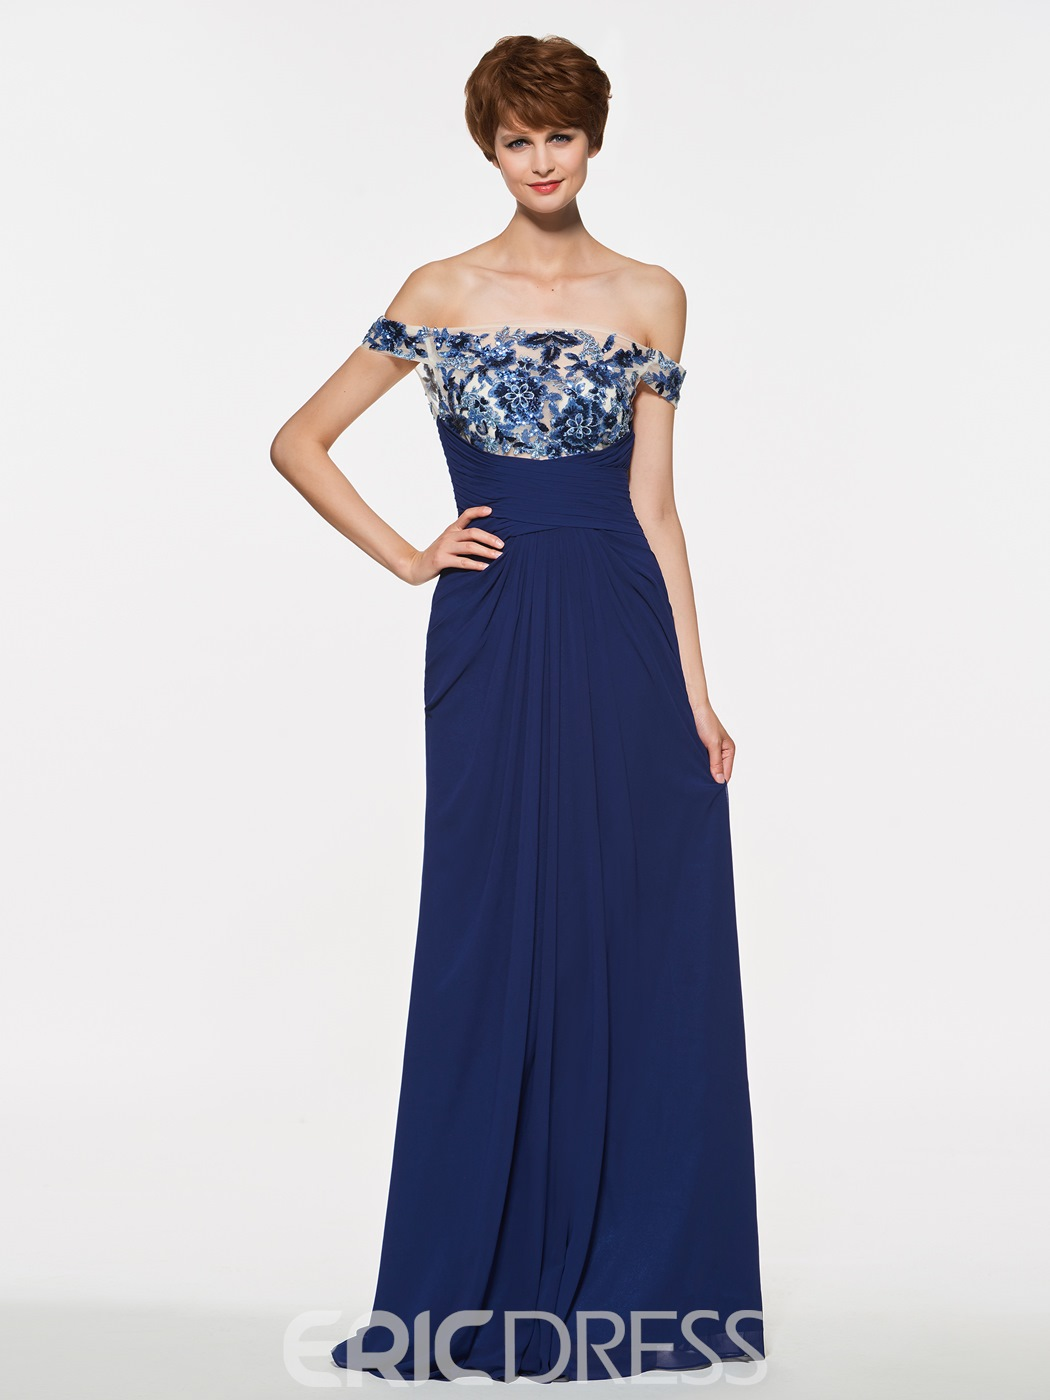 Ericdress Off The Shoulder Appliques A Line Long Mother Of The Bride Dress